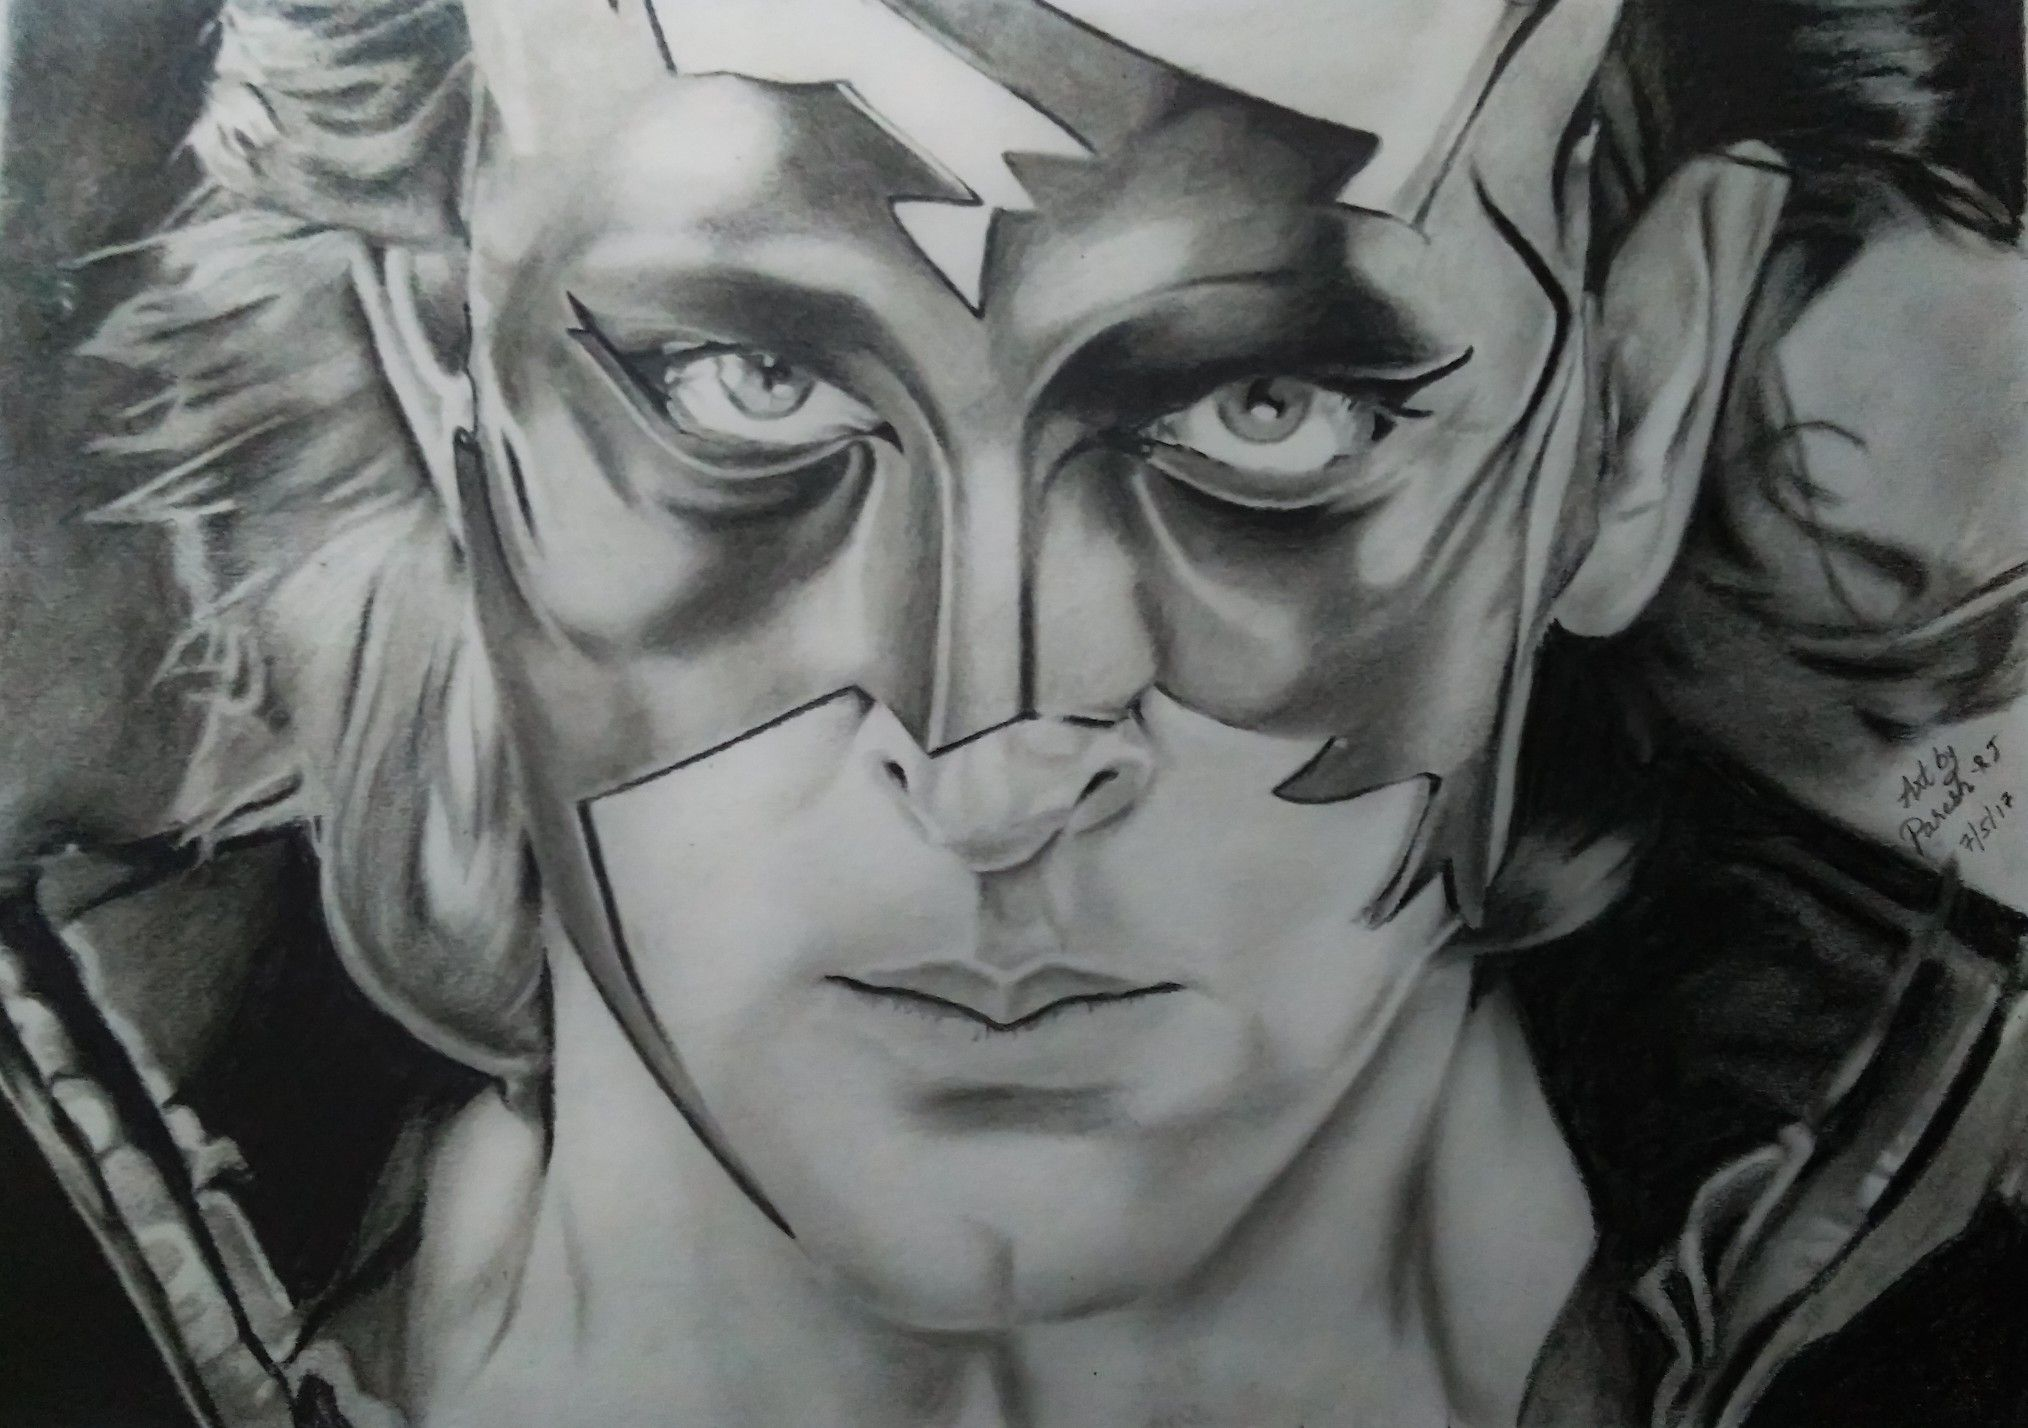 Krrish 3 Pencil Sketch